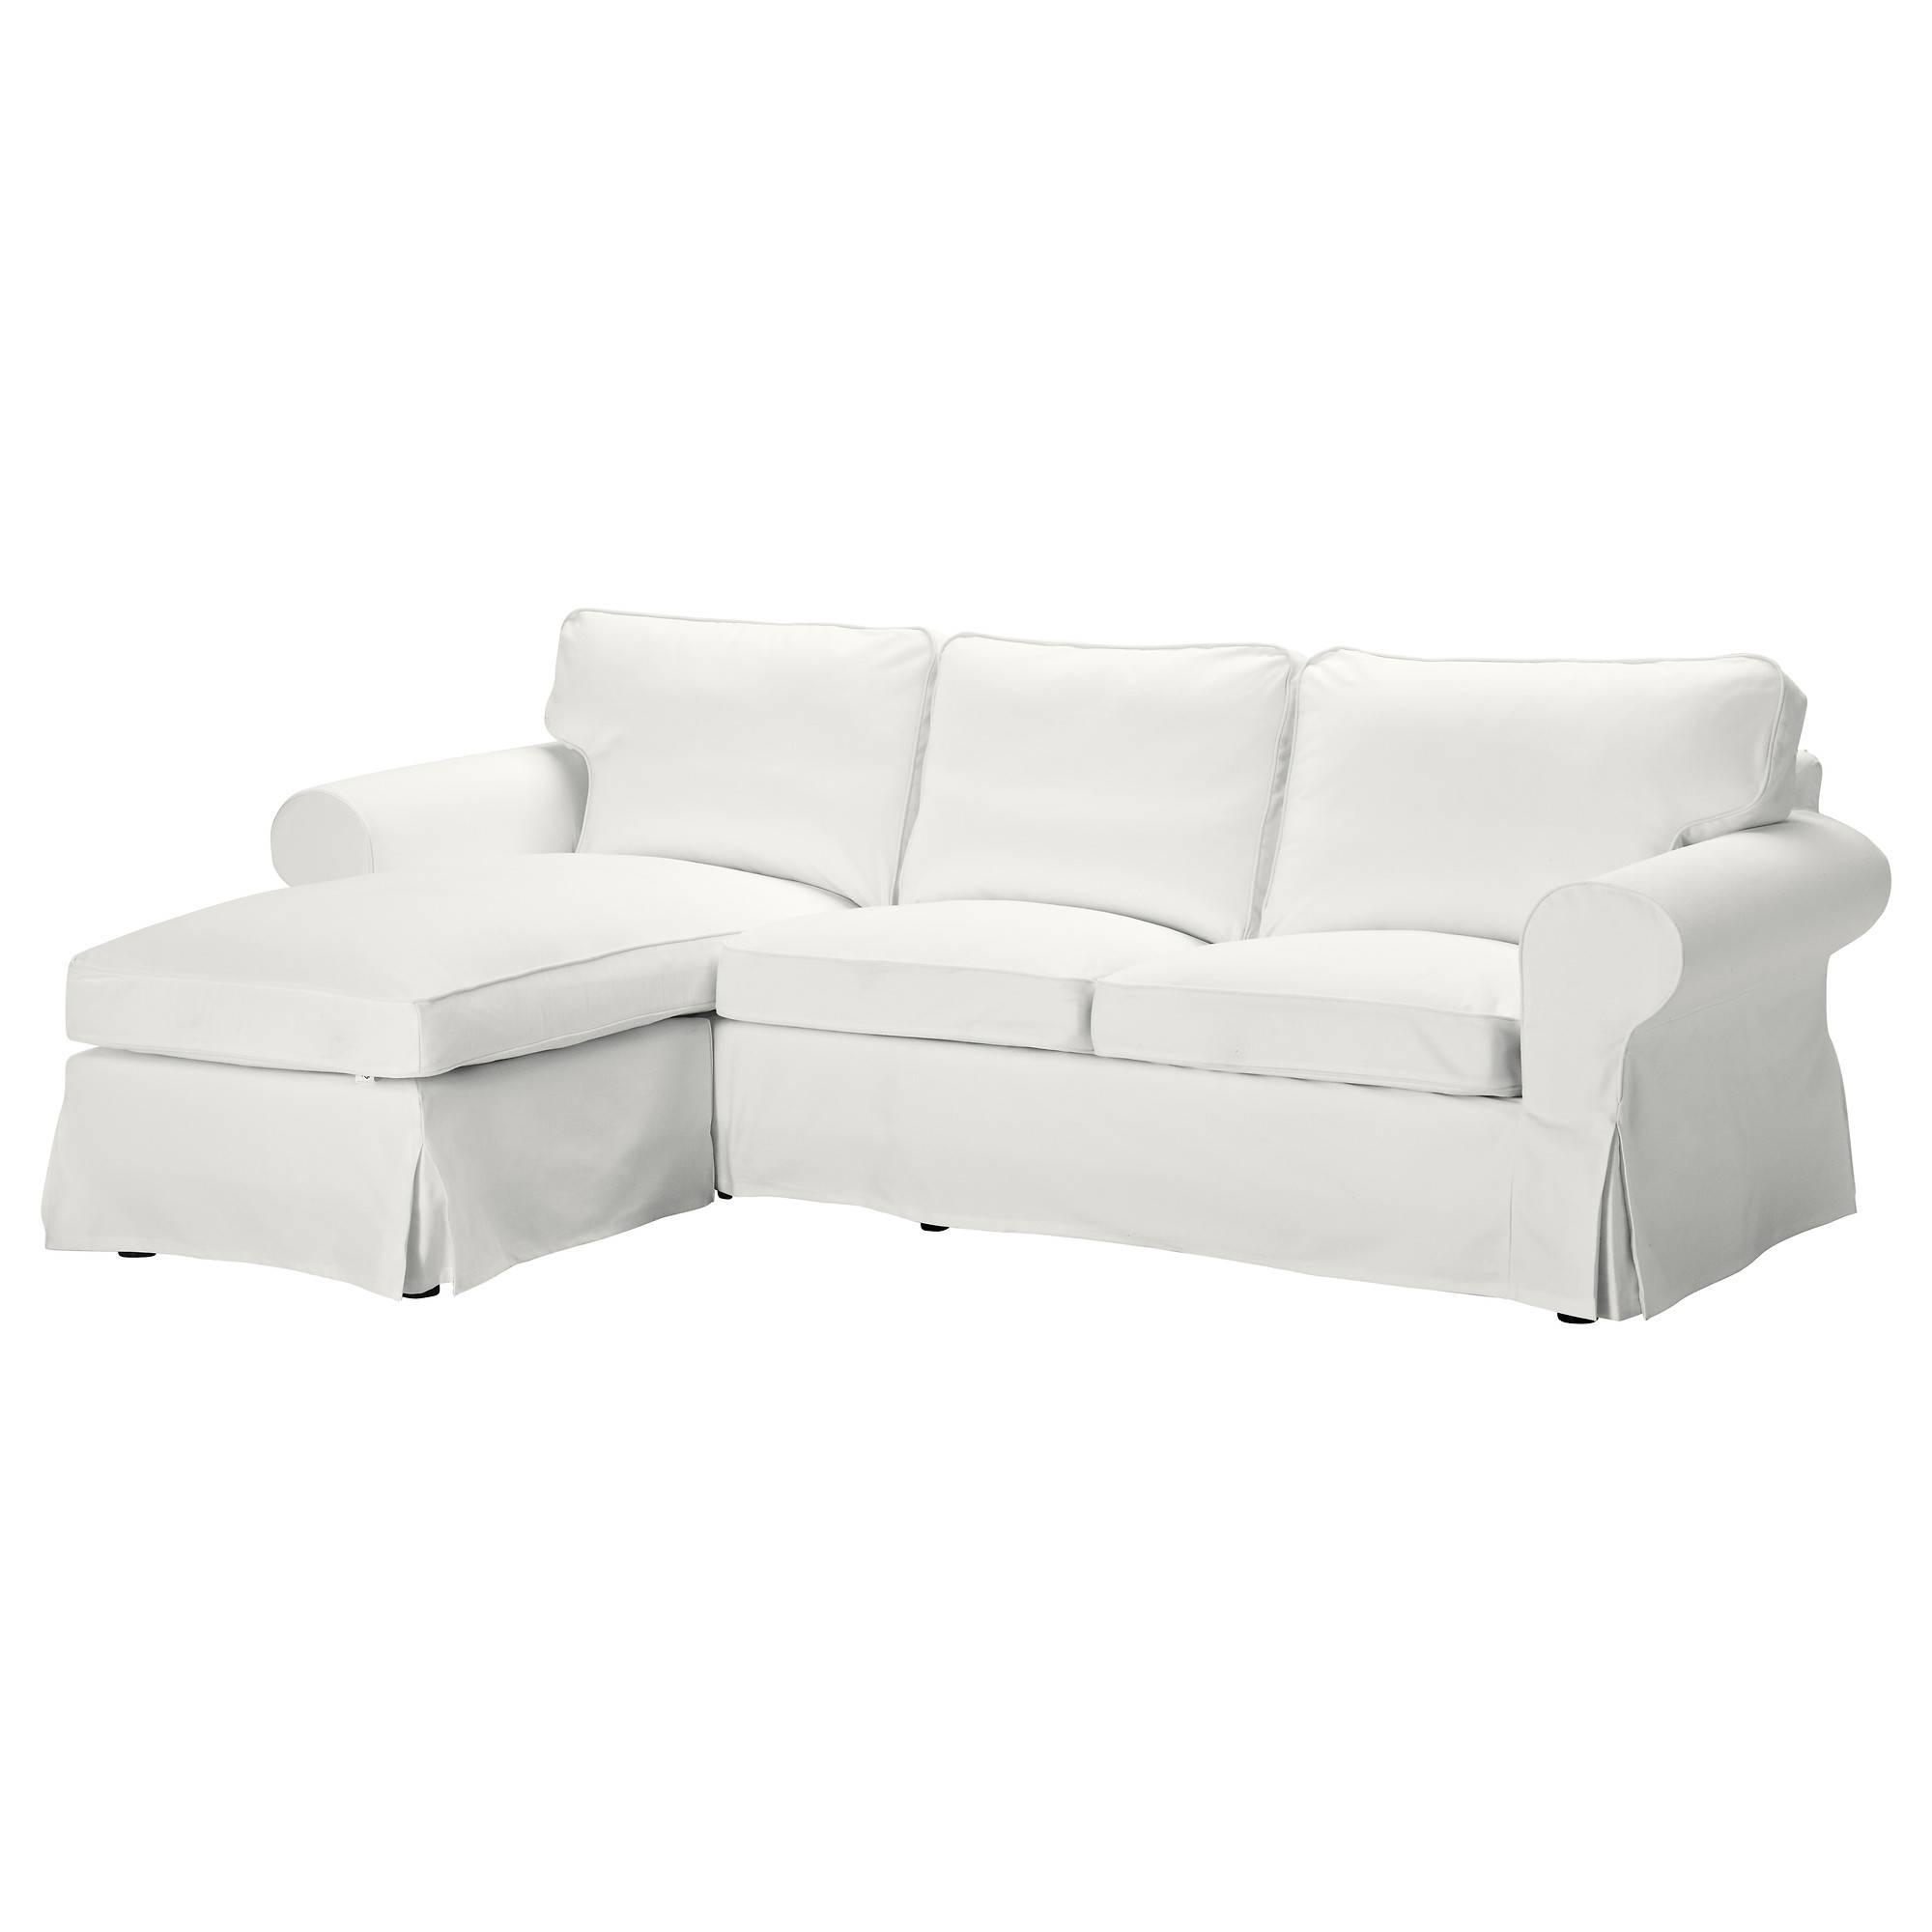 Ektorp Two-Seat Sofa And Chaise Longue Blekinge White - Ikea in Ikea Chaise Lounge Sofa (Image 8 of 30)